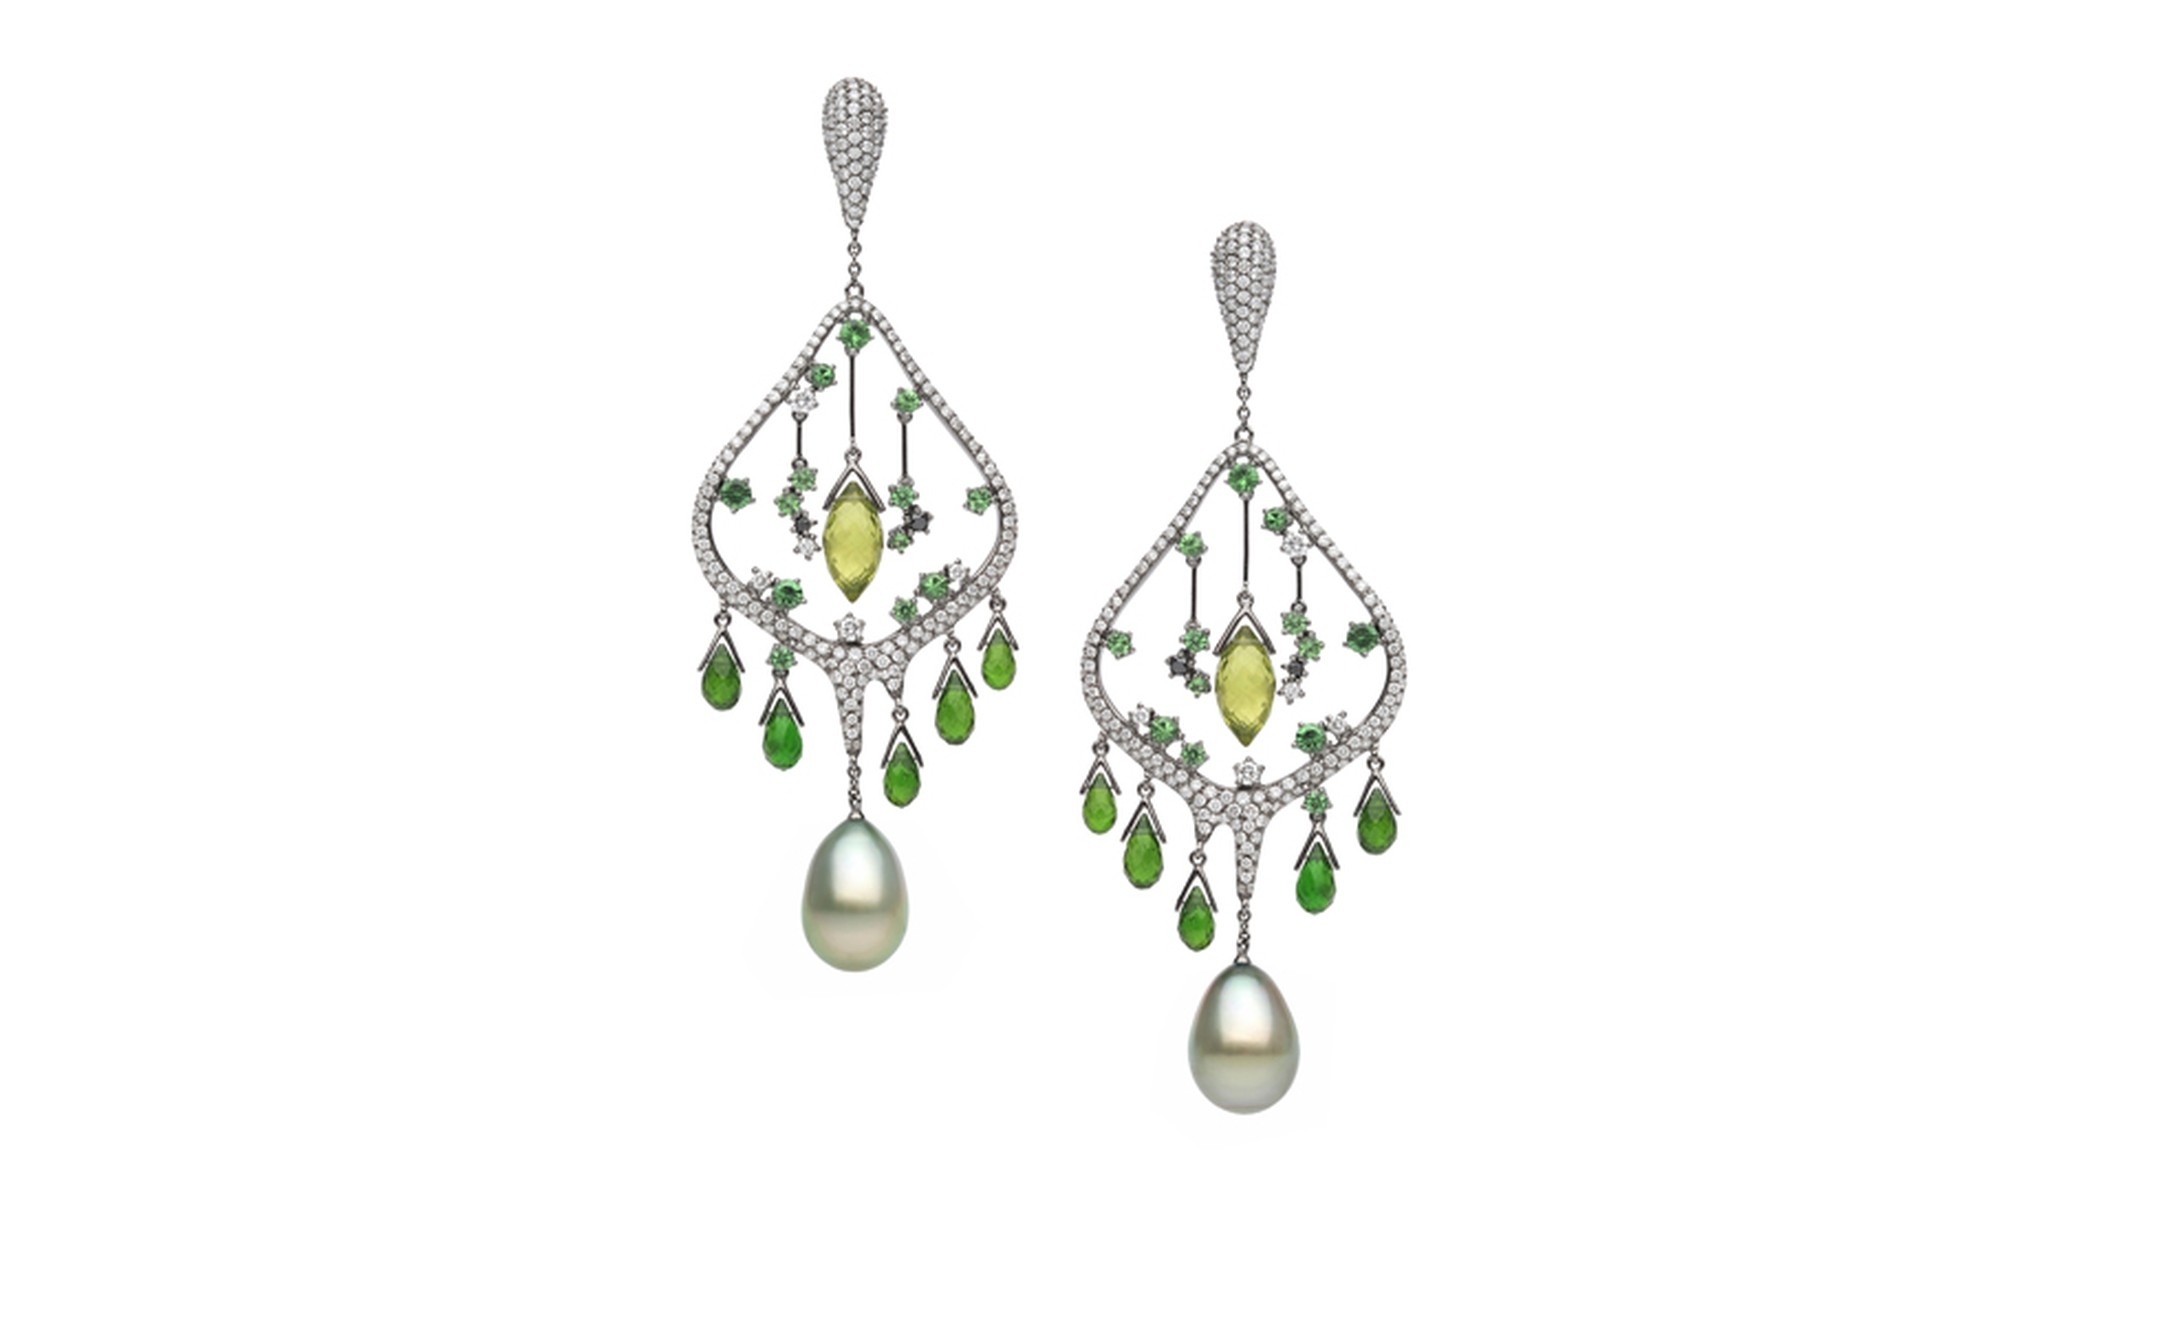 Autore, Fire & Ice Advent of Spring earrings in white gold, with Tahitian South Sea pearls, tsavorite garnets, chrome diopside, peridot and black and white diamonds. $62,000 AUD